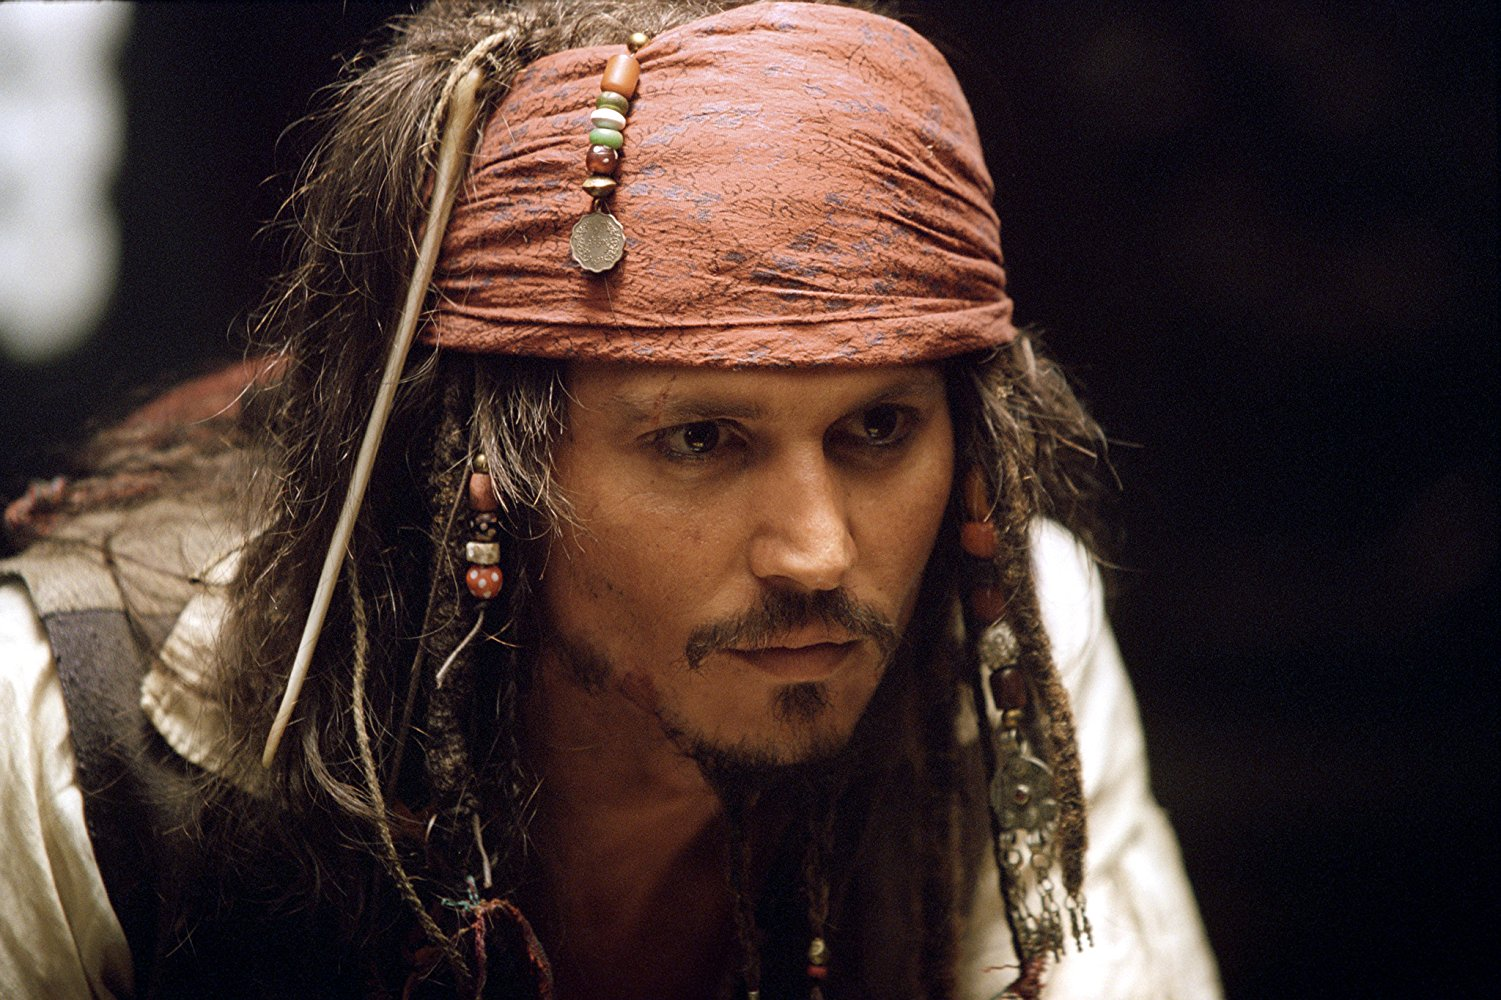 jack sparrow inspired hair